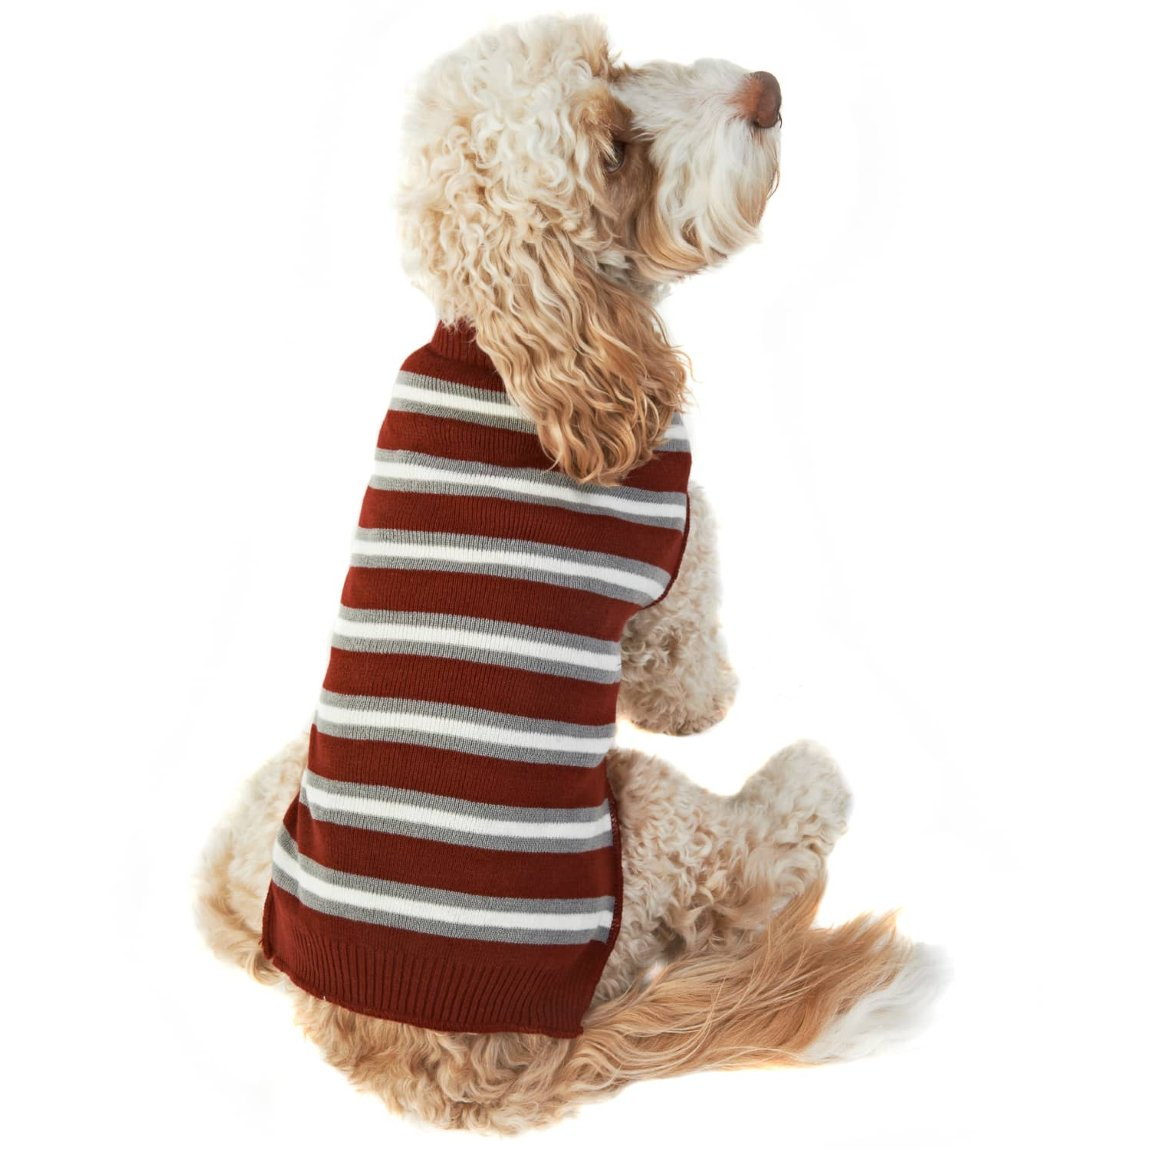 Doggy Jumper - Medium - X-Large - Stripes